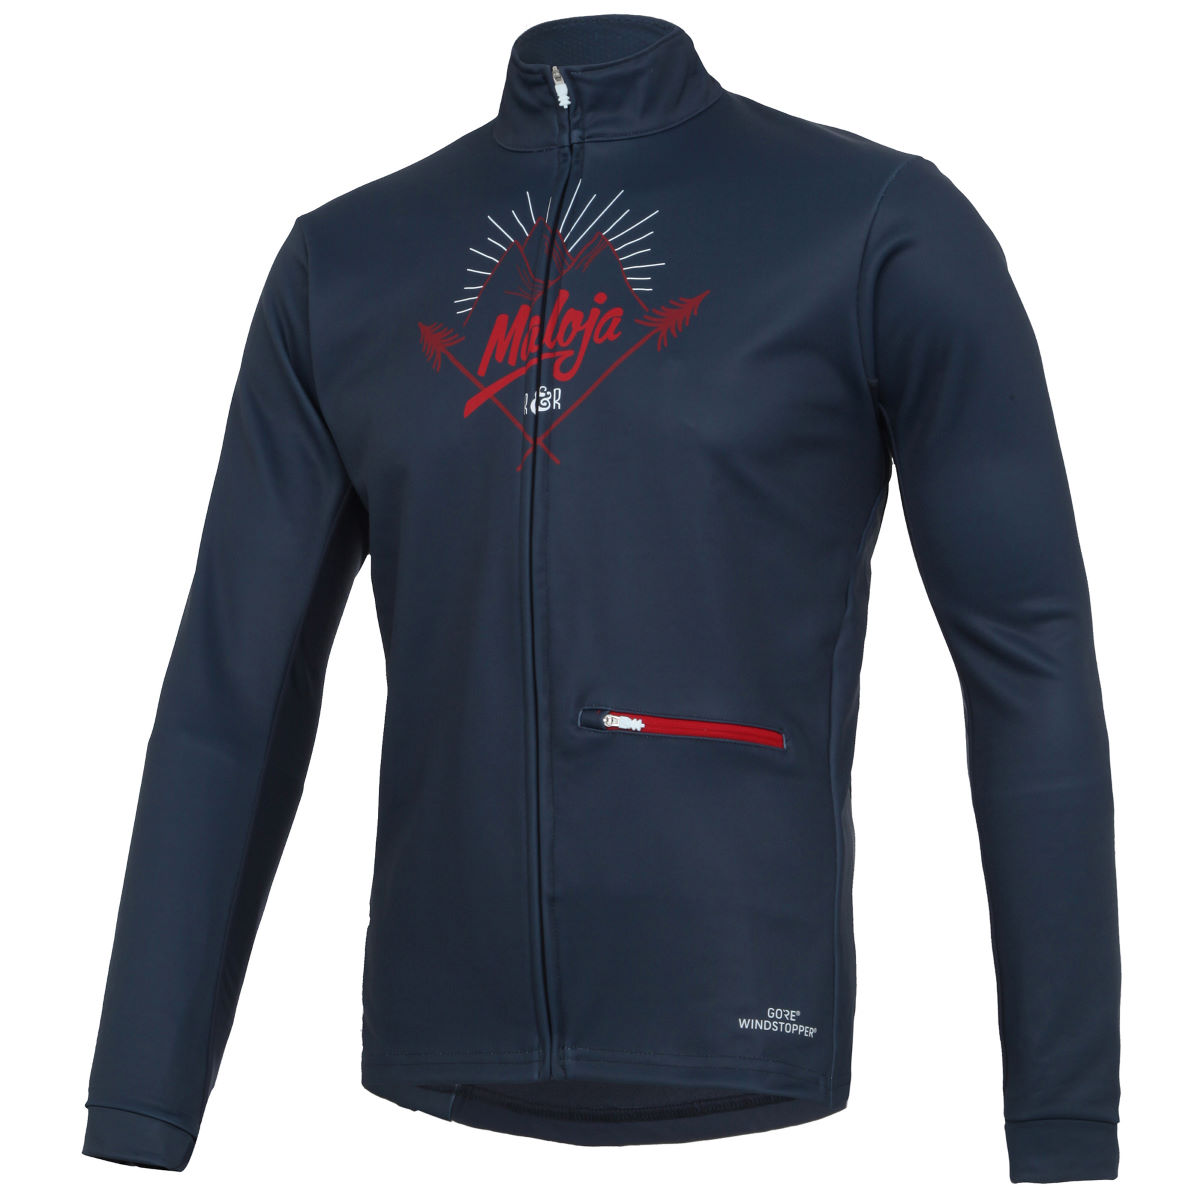 Veste coupe-vent Maloja BurtM. - S Nightfall Coupe-vents vélo